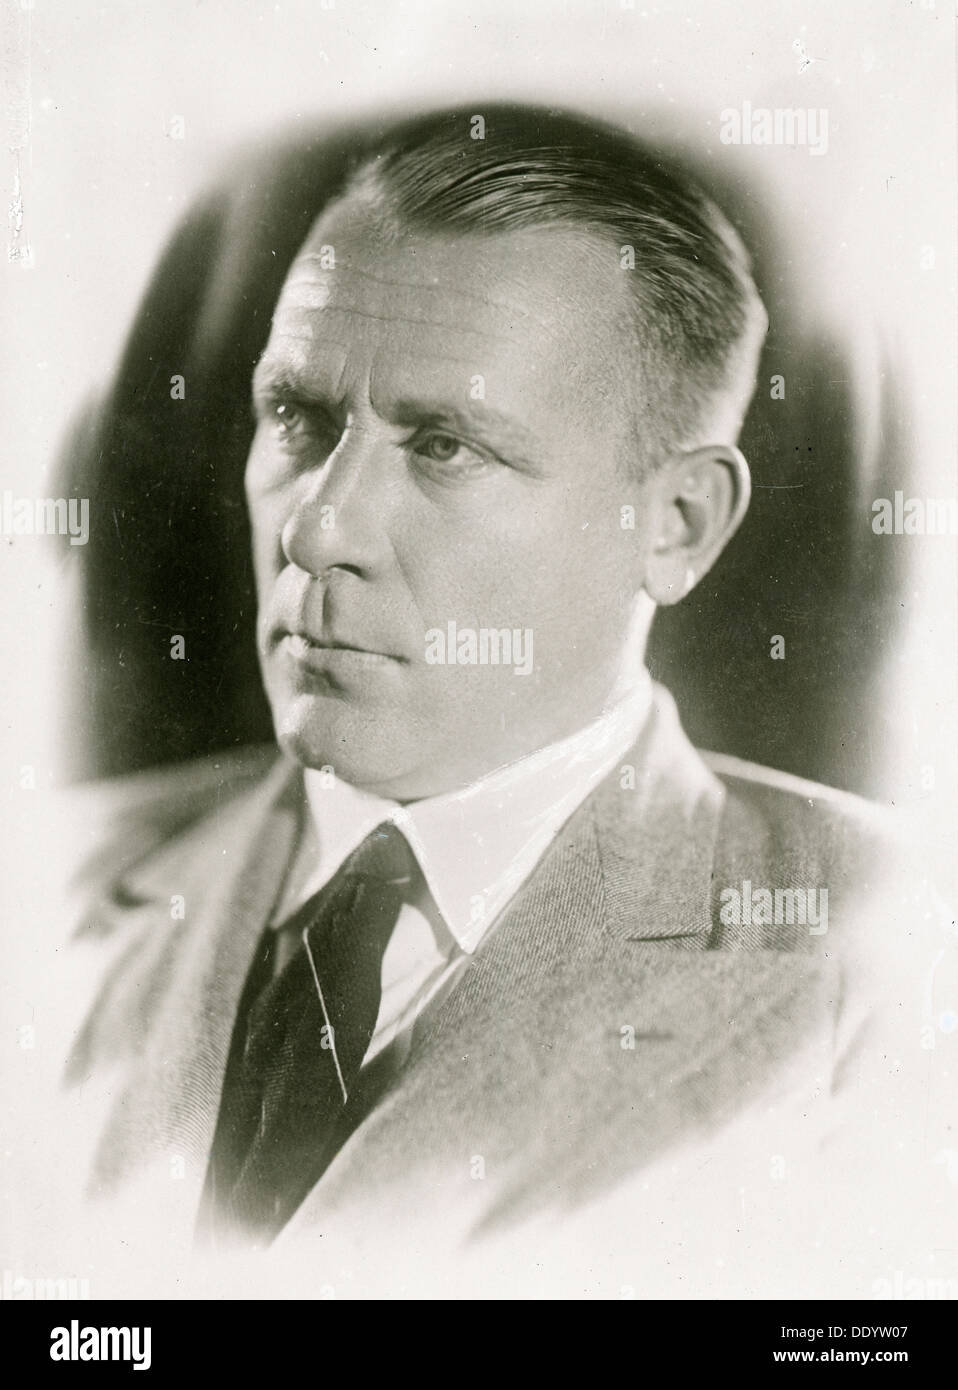 Mikhail Bulgakov, Russian author, 1930s.  Artist: Anon - Stock Image